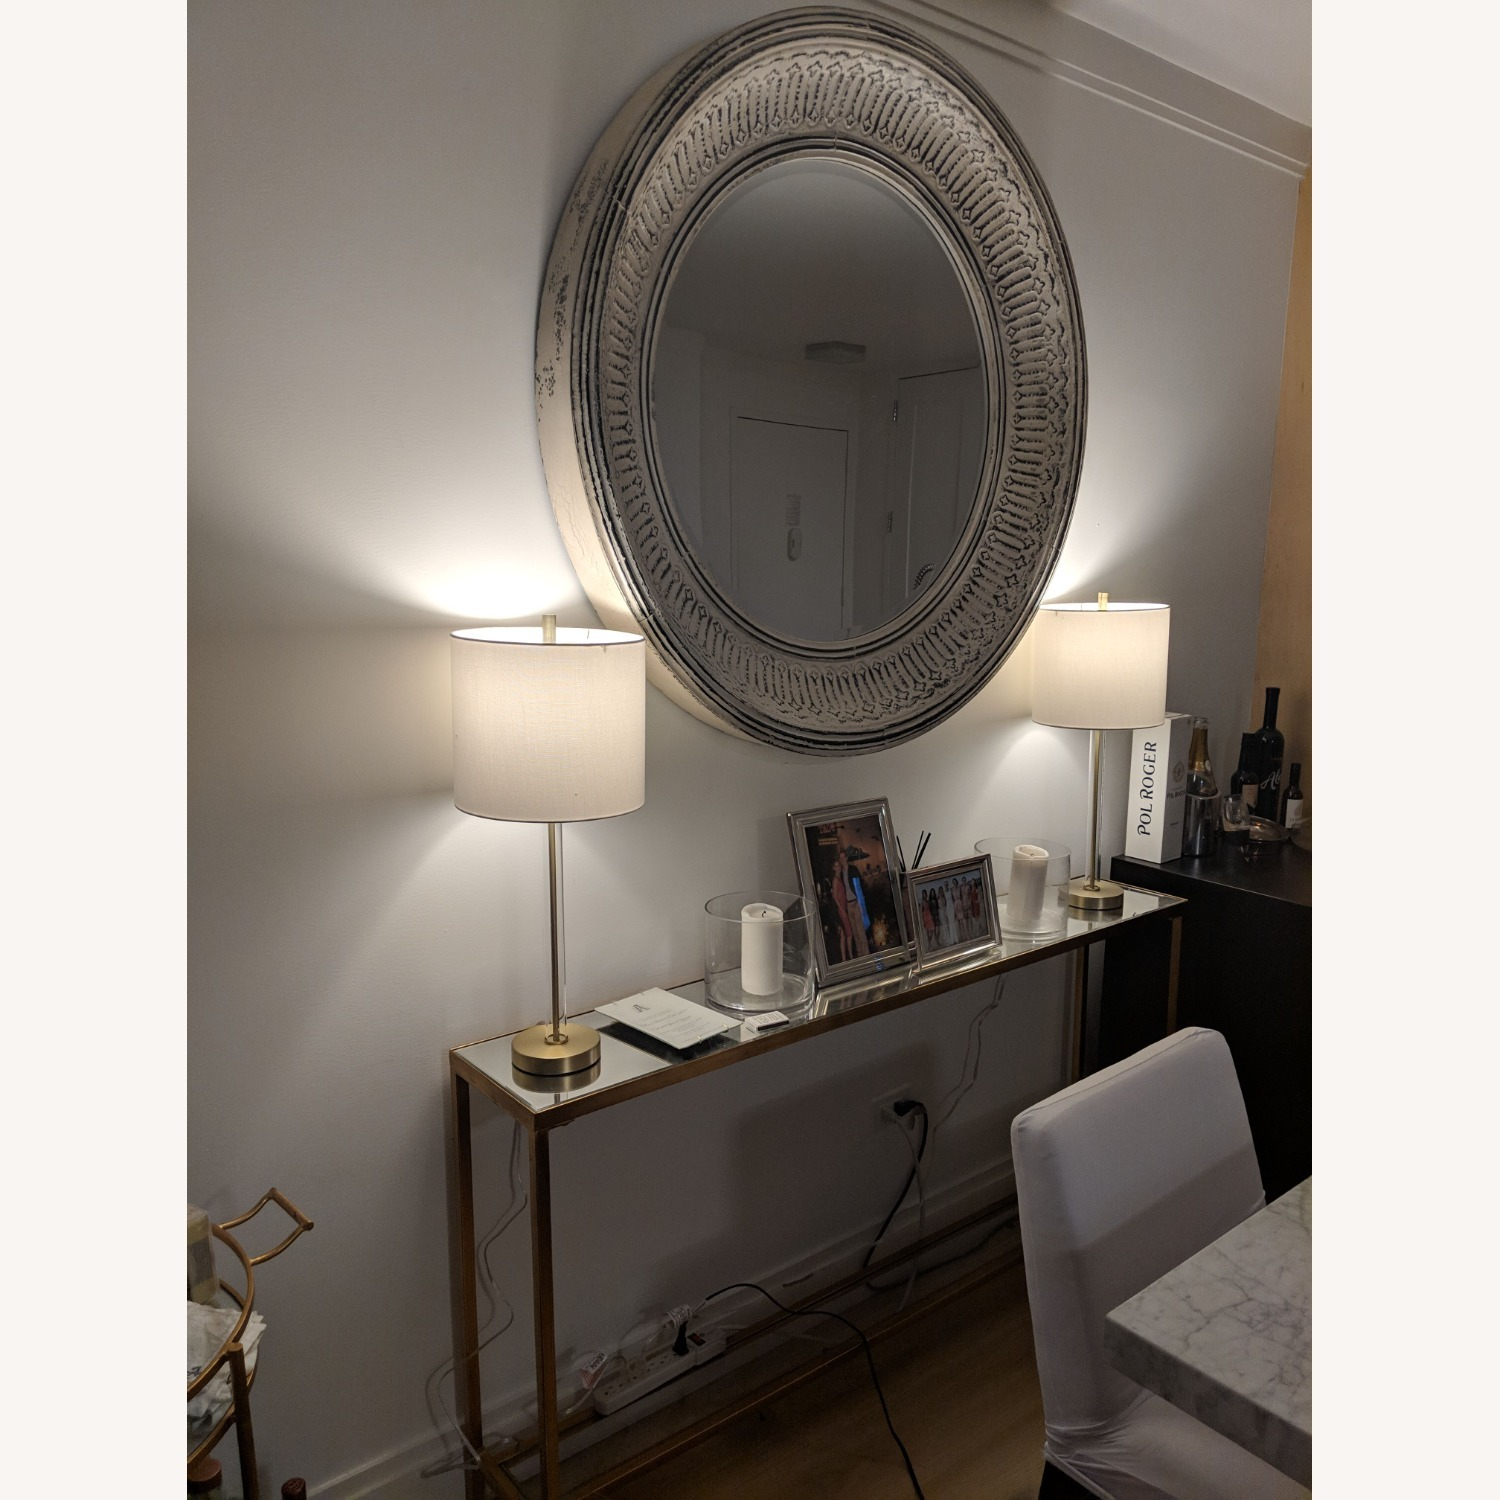 Pottery Barn Winslet Mirror Large Round White - image-3